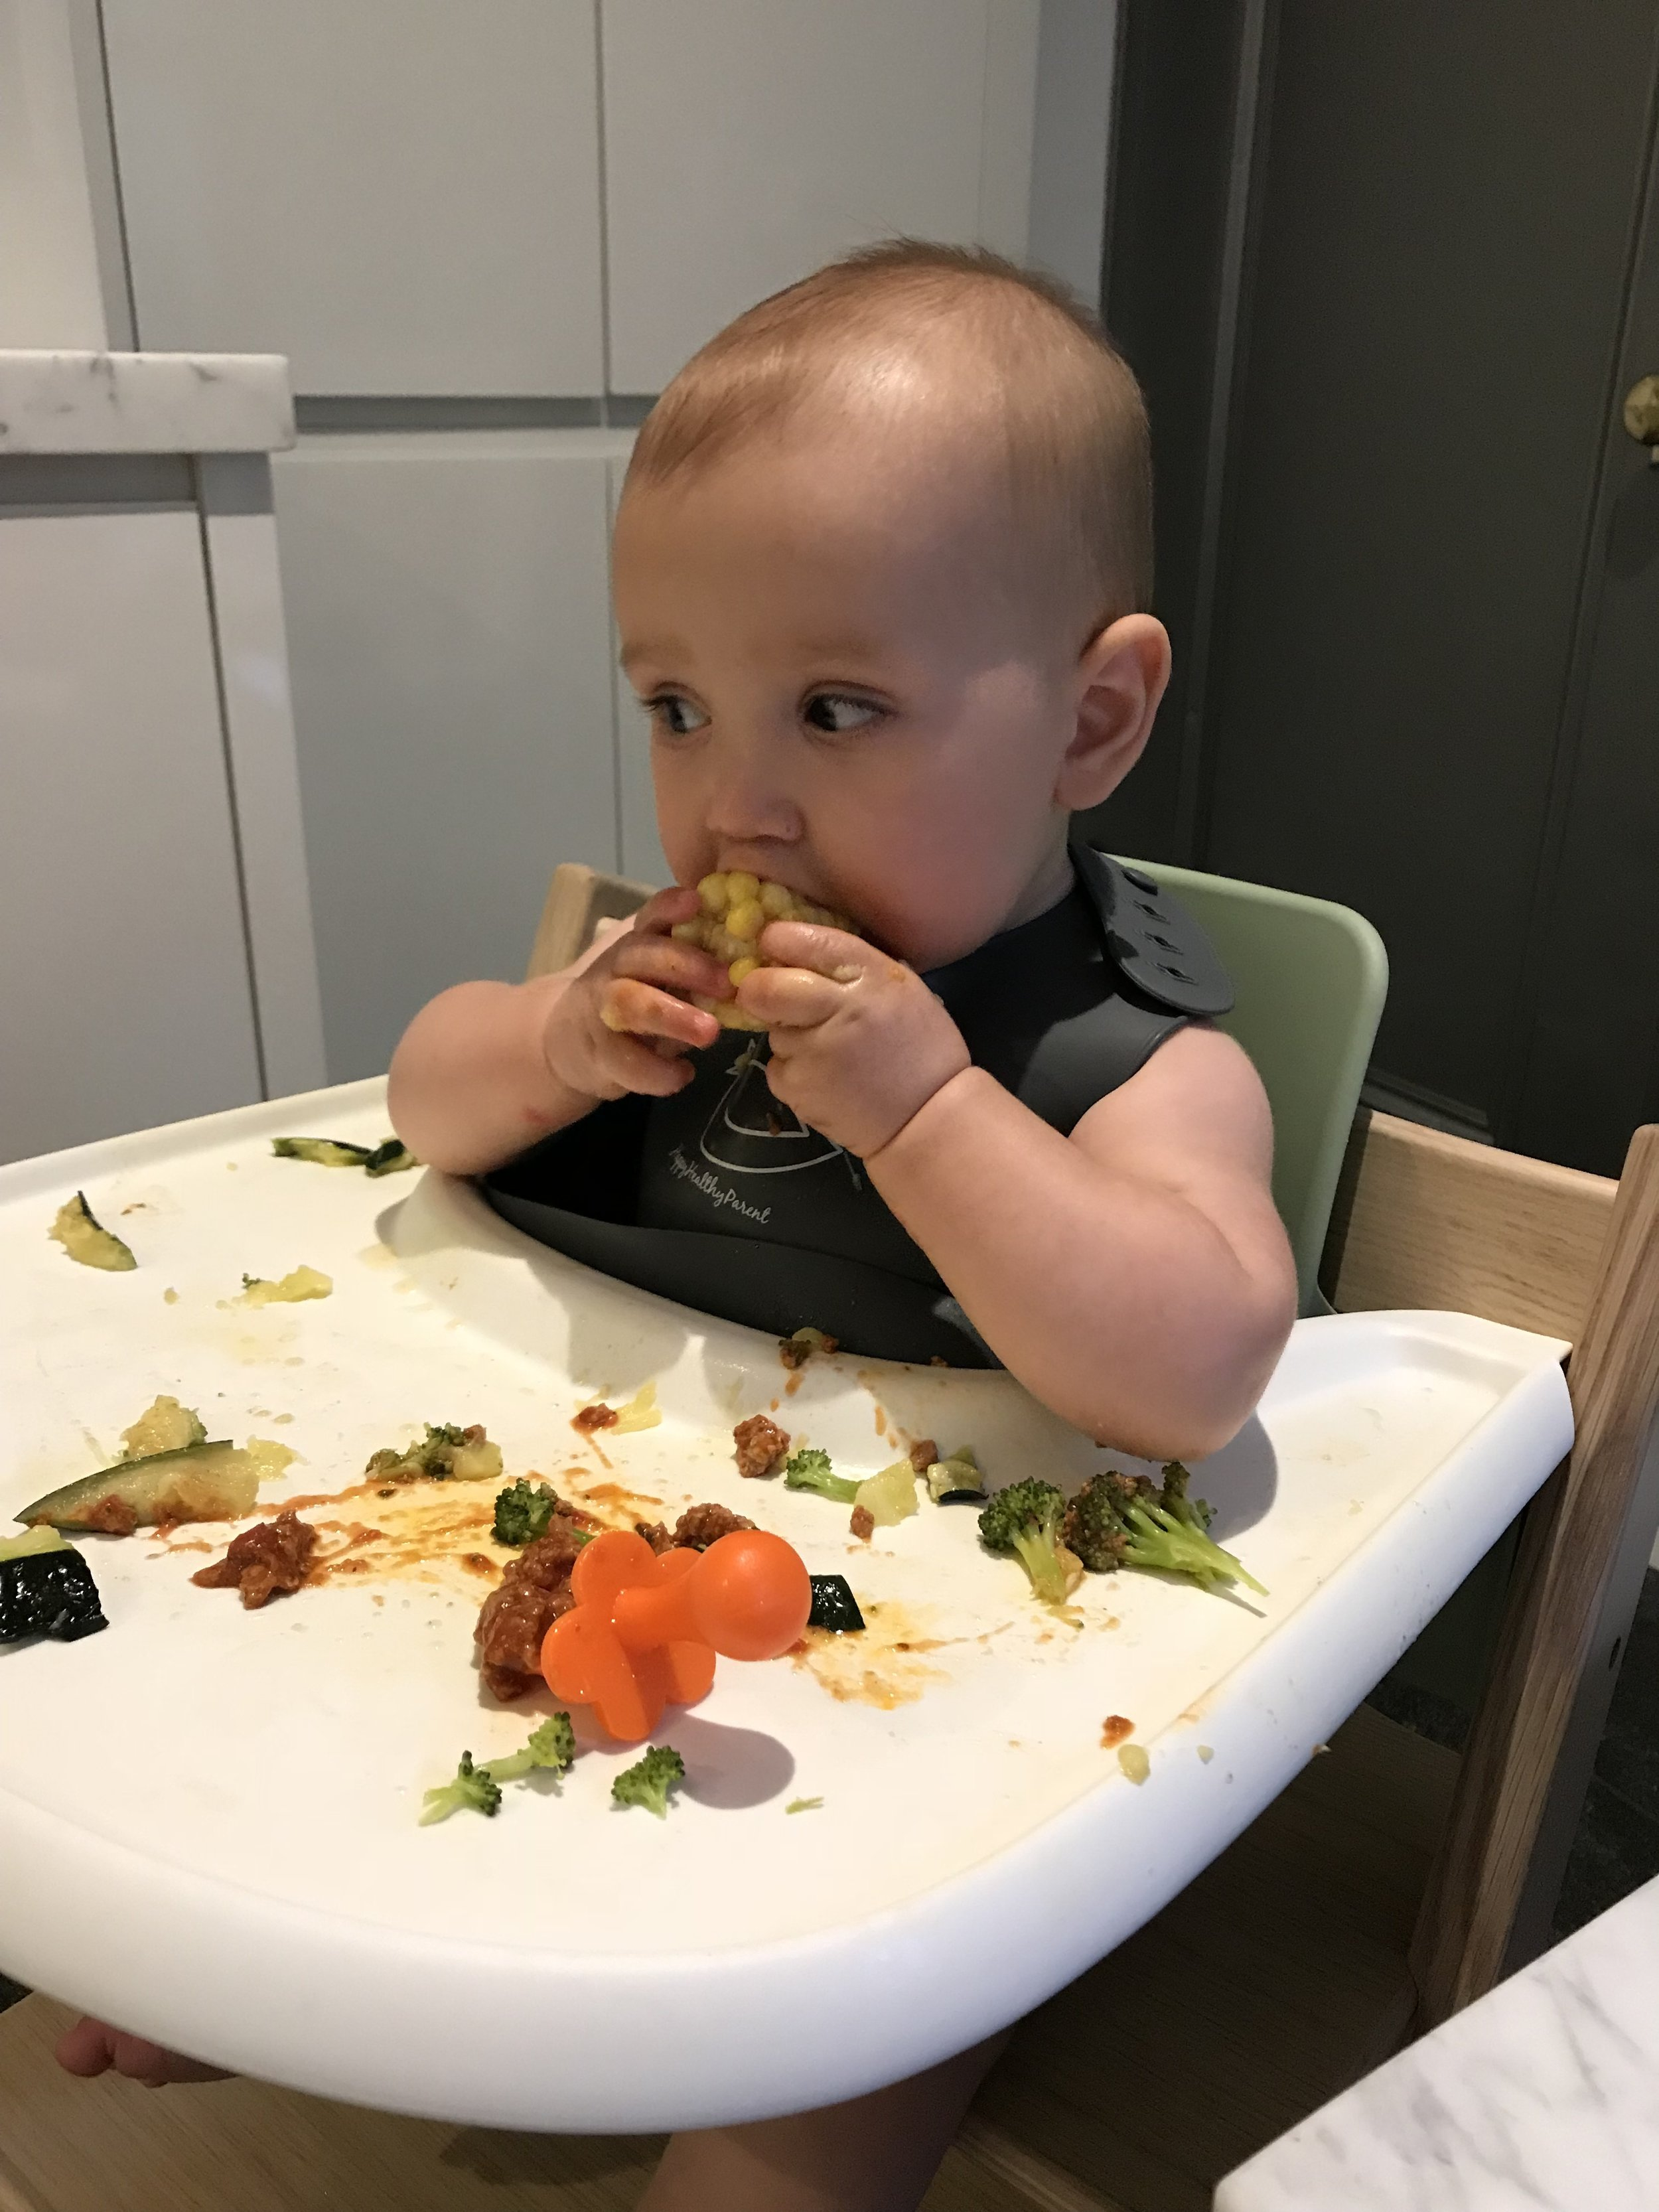 Jack enjoying some corn on the cob for the first time.